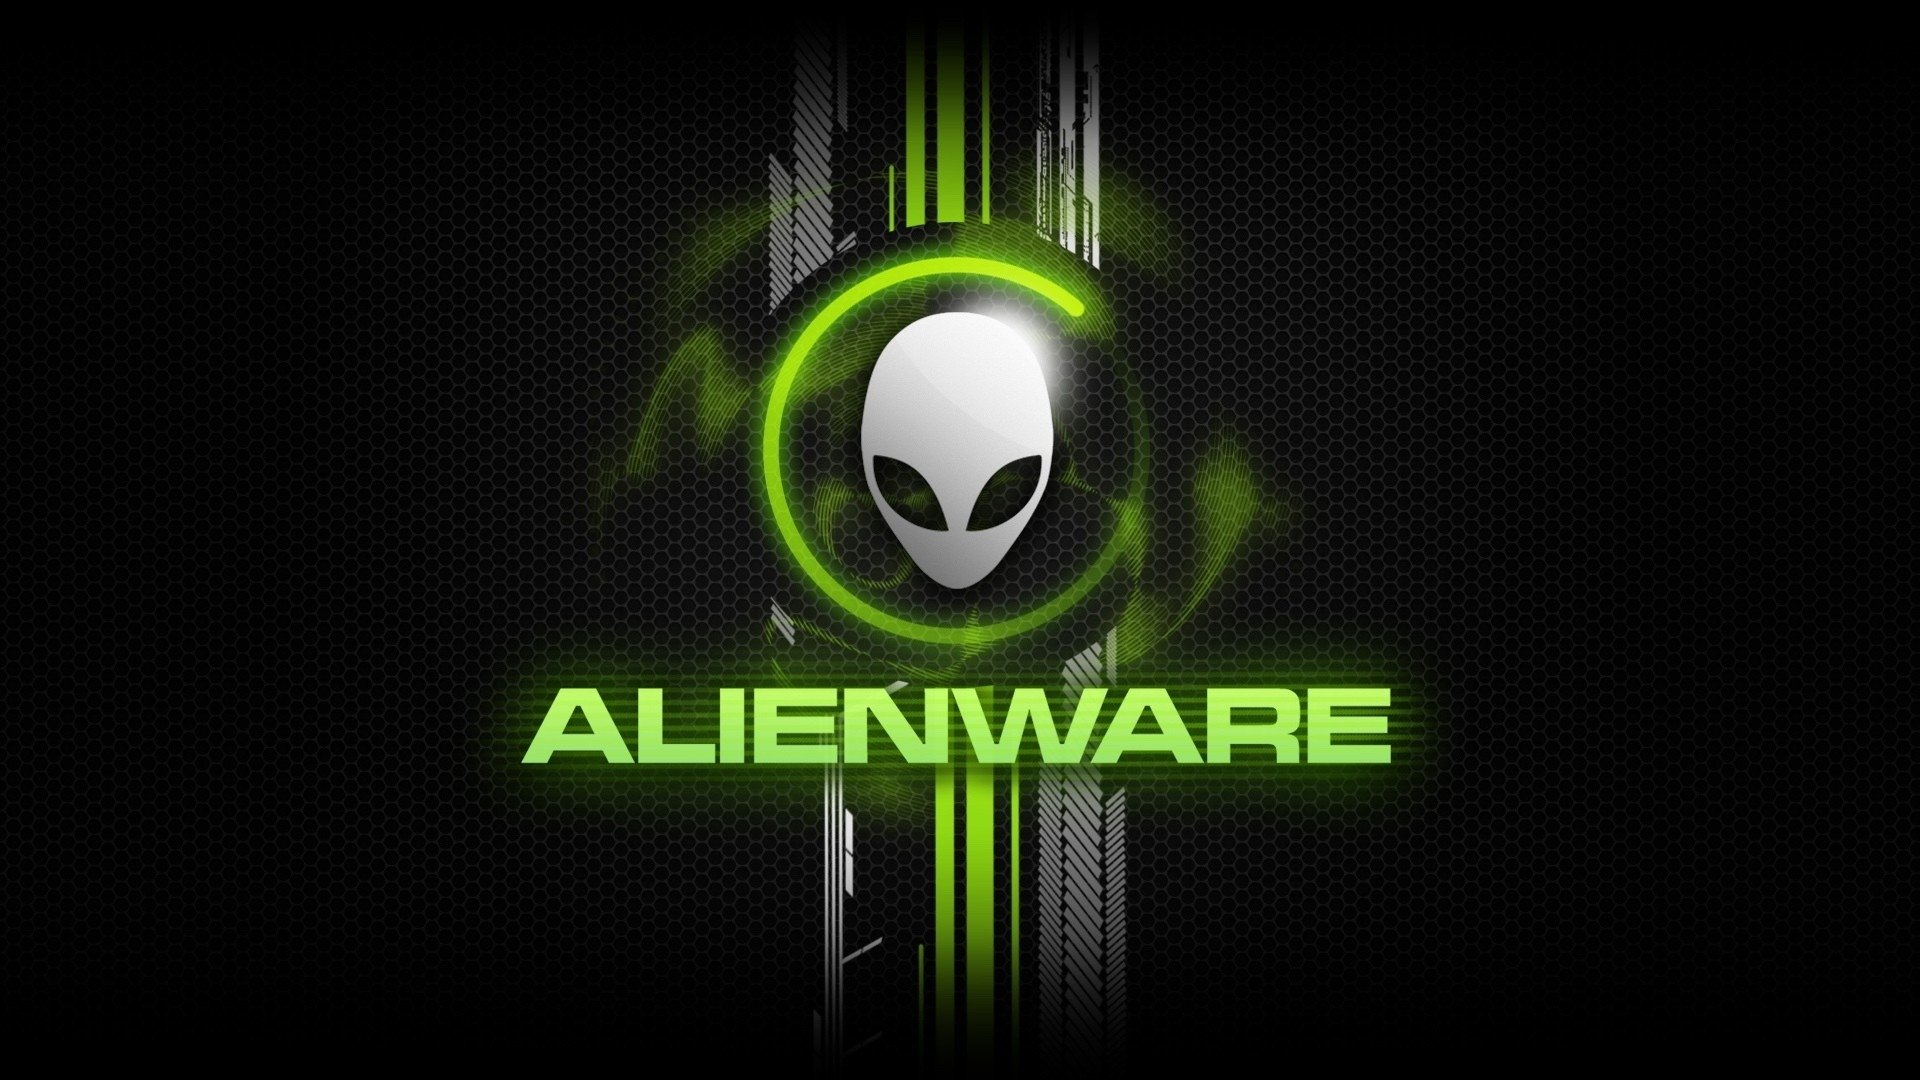 125 alienware hd wallpapers background images wallpaper abyss hd wallpaper background image id177580 voltagebd Gallery